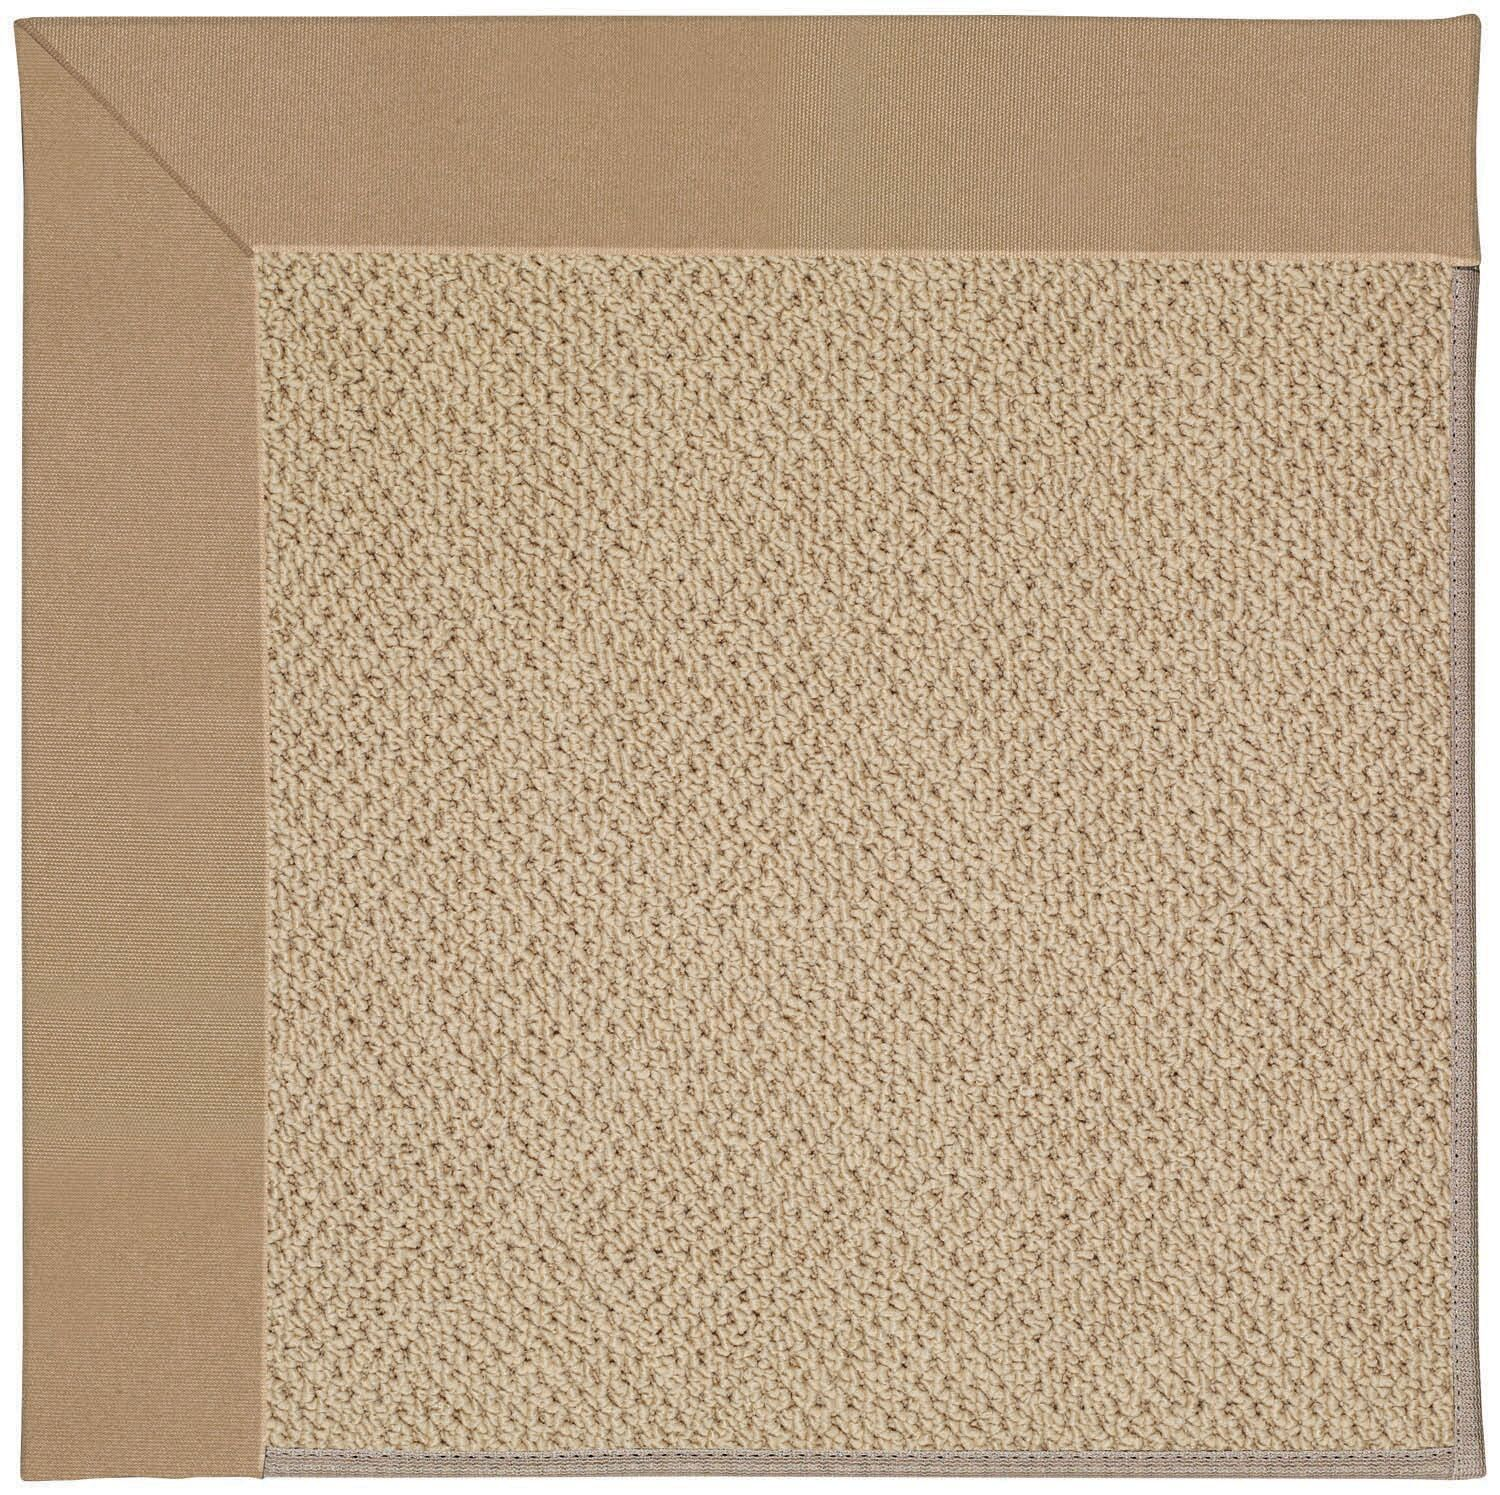 Lisle Machine Tufted Biscuit/Brown Indoor/Outdoor Area Rug Rug Size: Rectangle 3' x 5'